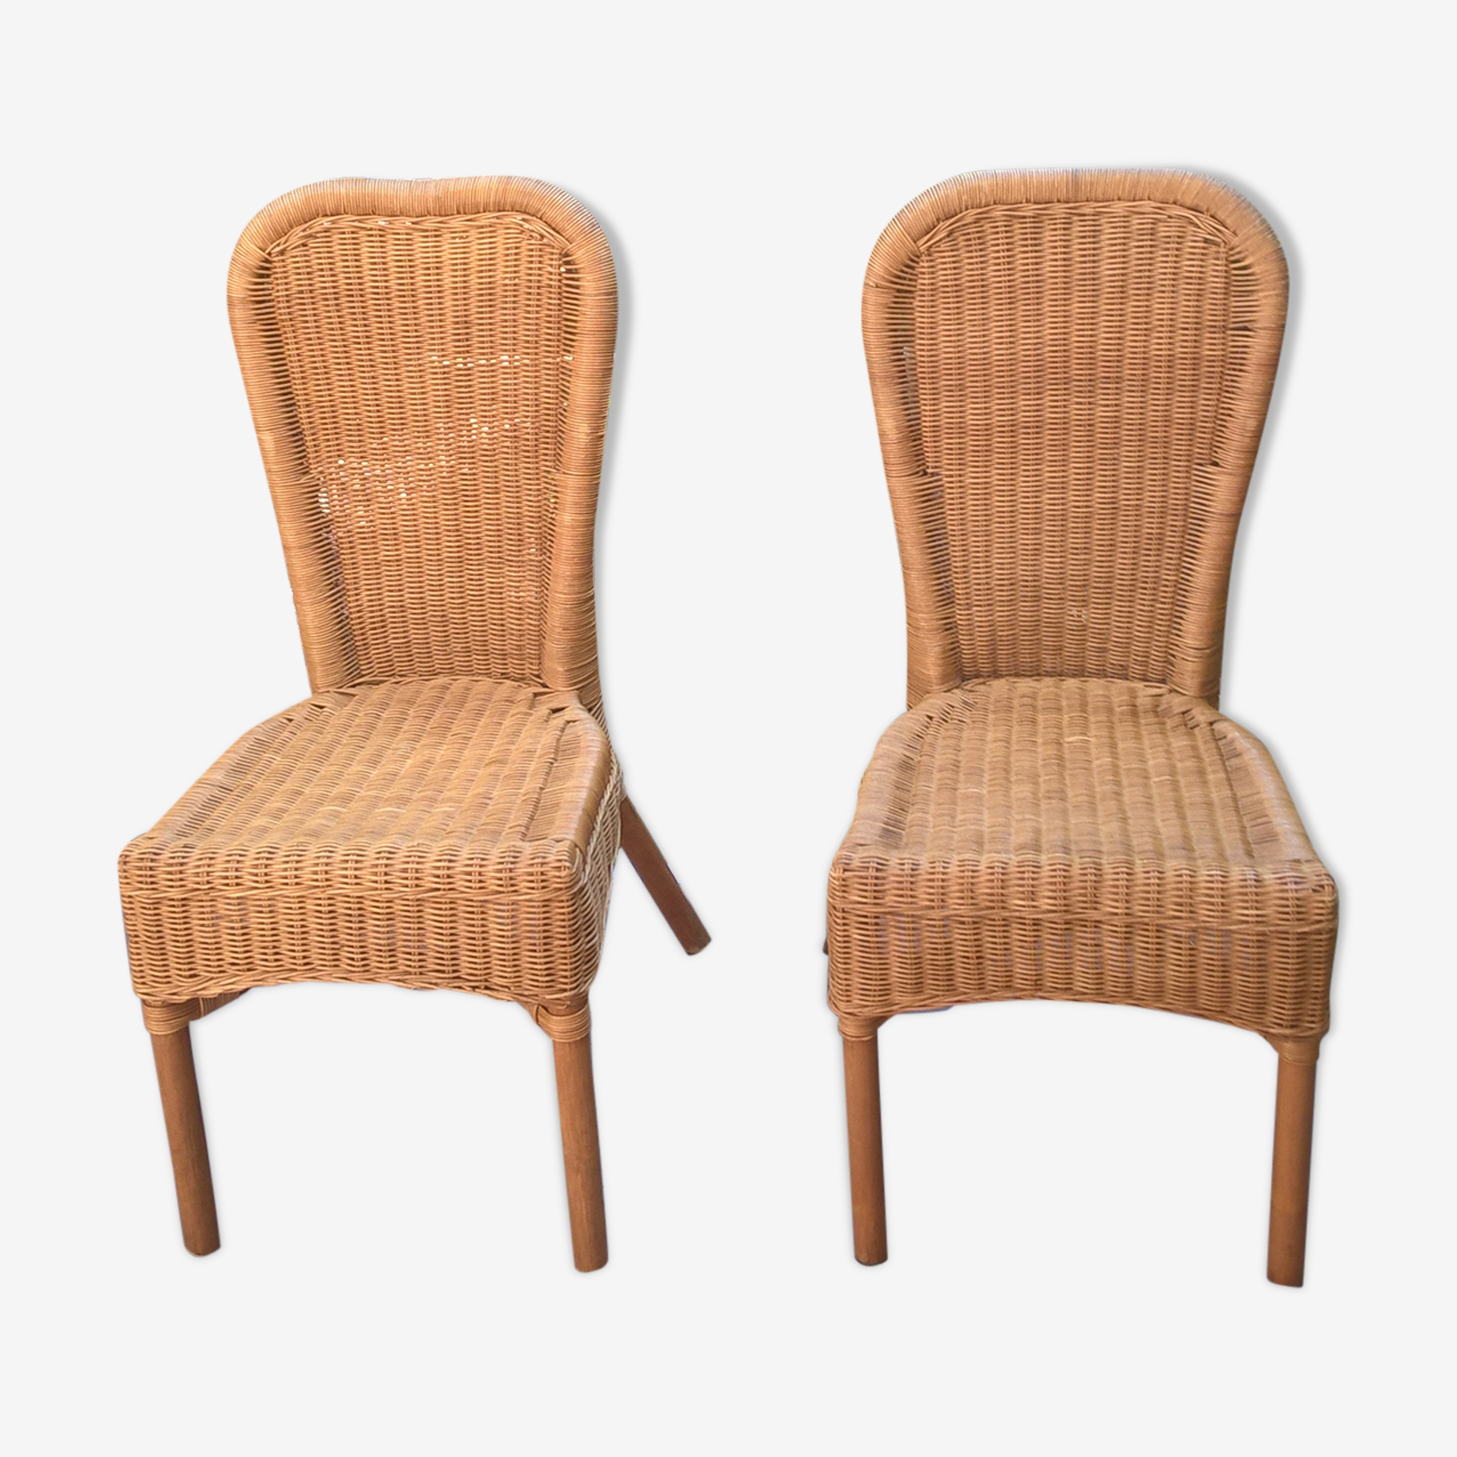 Nice pair of 90 Euros rattan chairs